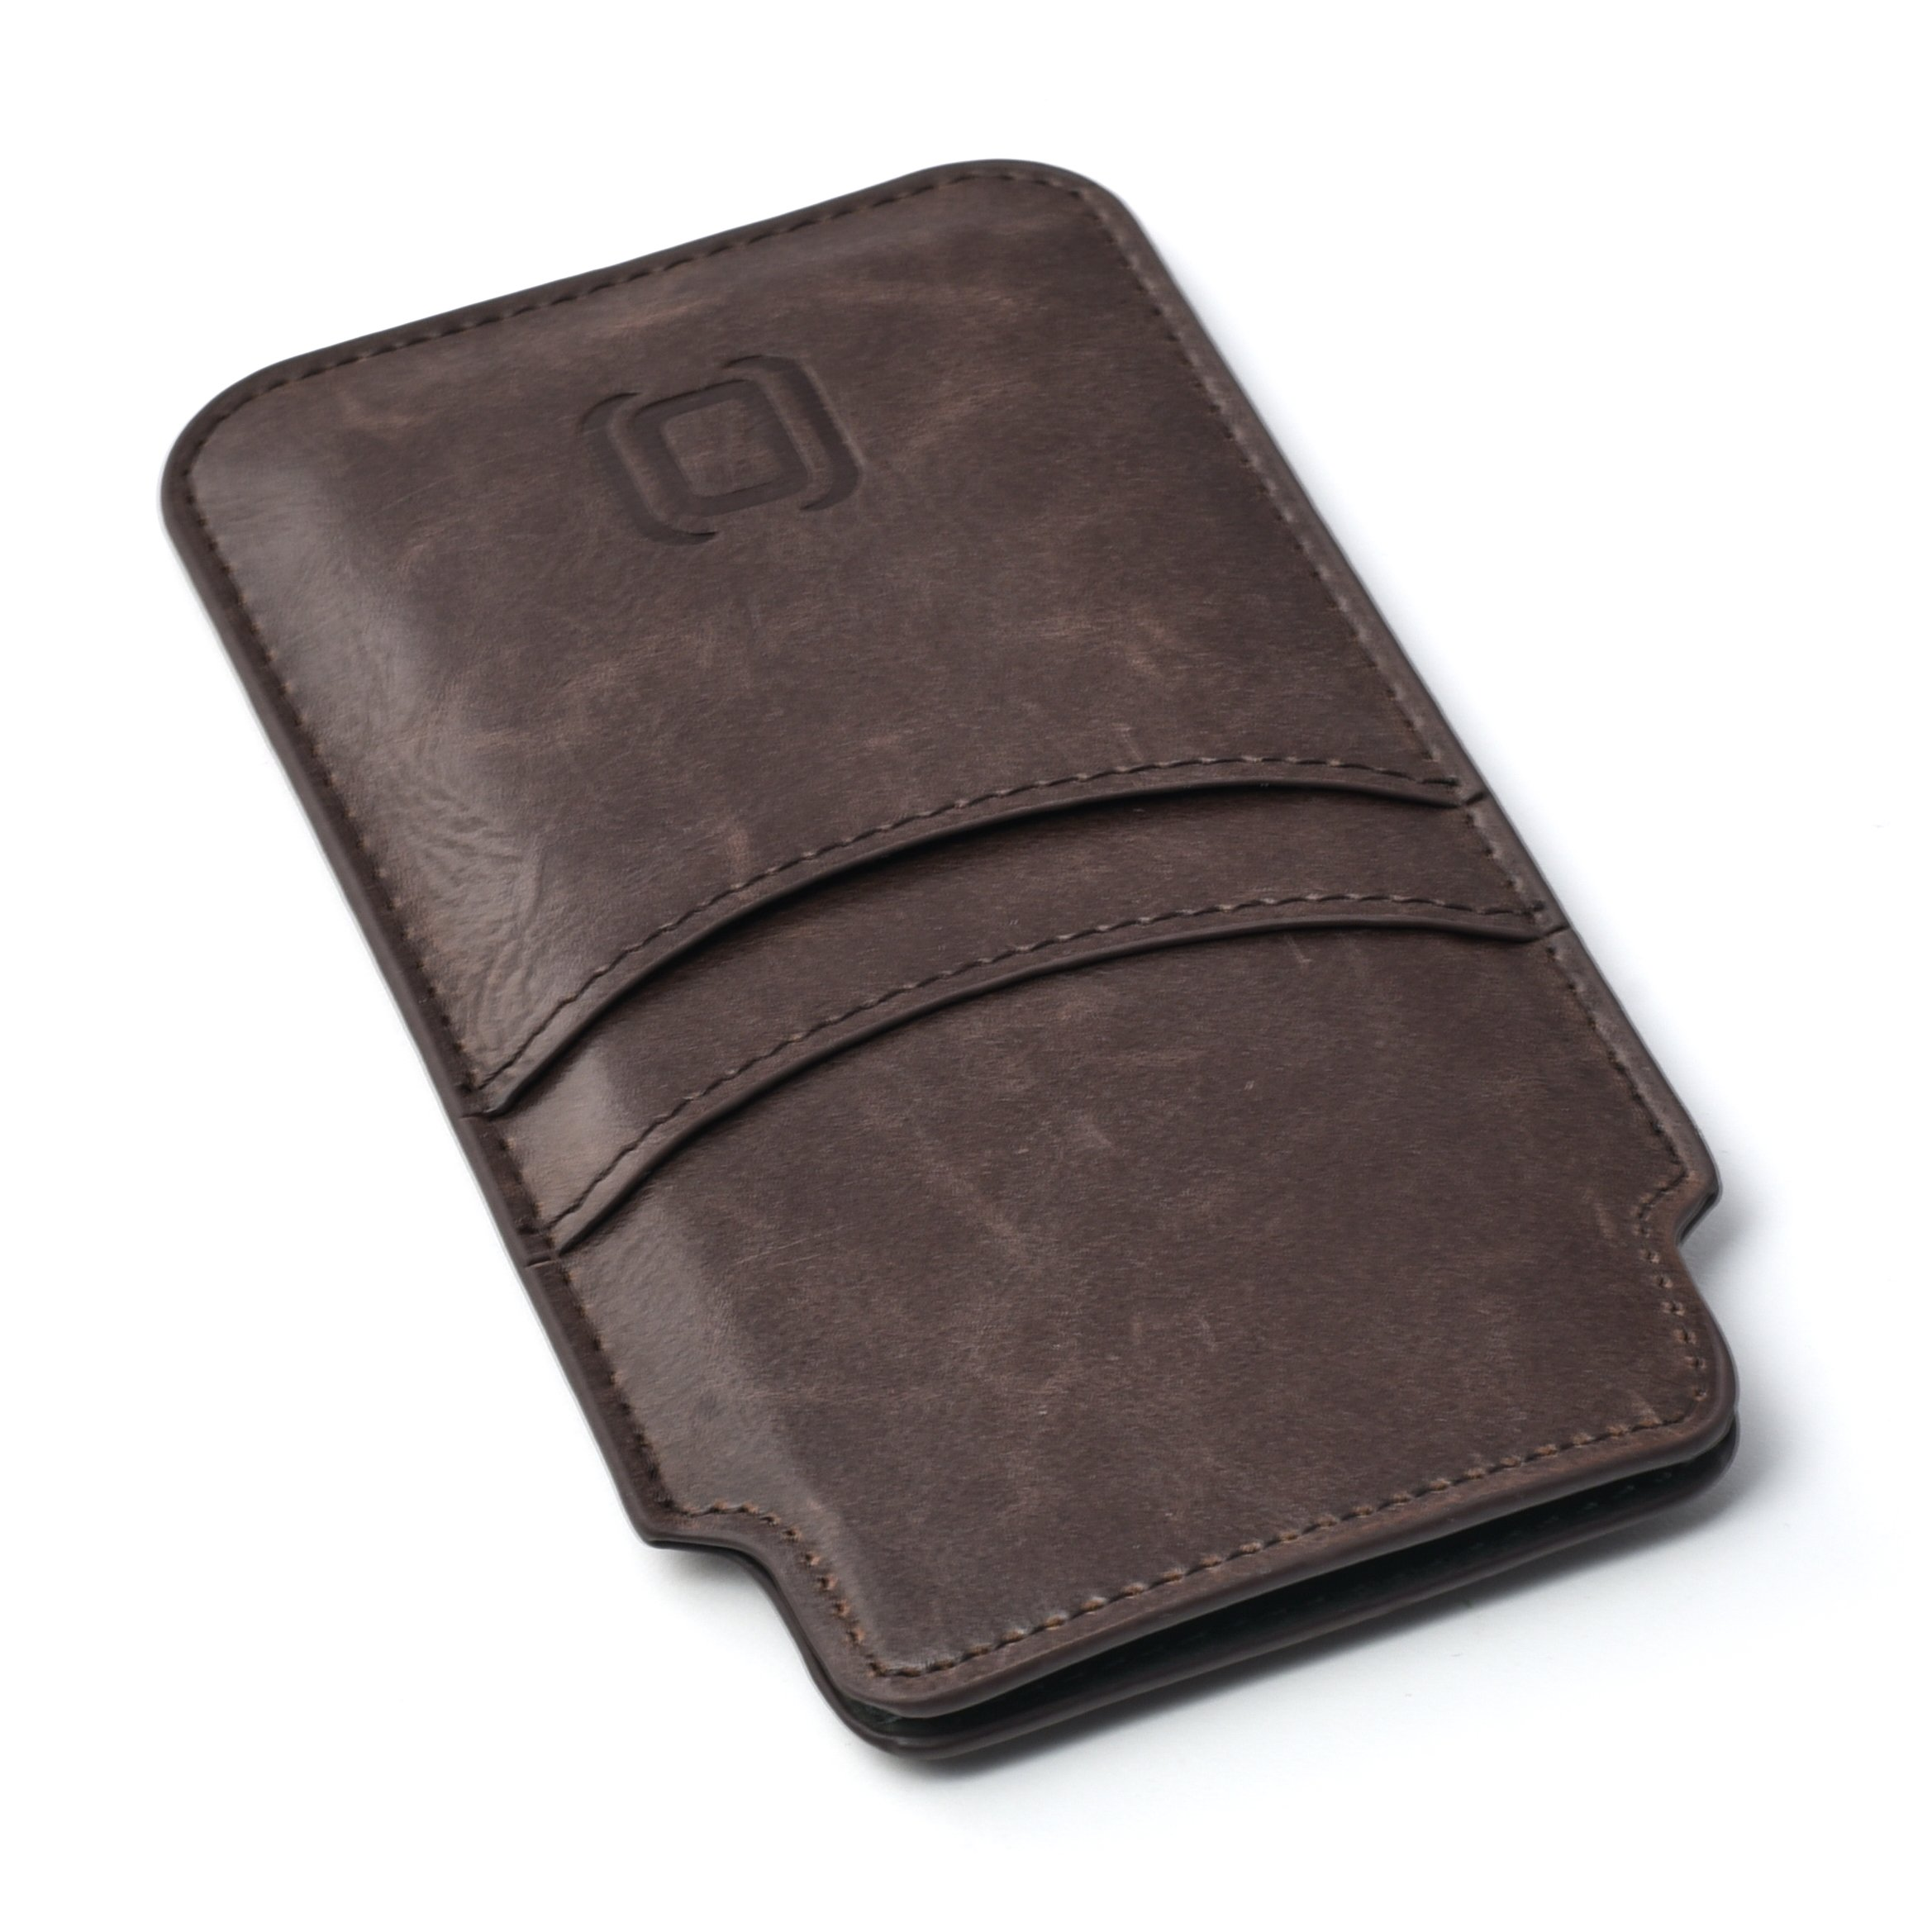 Dockem Provincial Wallet Sleeve for iPhone X; Ultra Slim Vintage Synthetic Leather Cover with 2 Card Holder Slots; Professional Executive Pouch Case [Brown] by Dockem (Image #4)